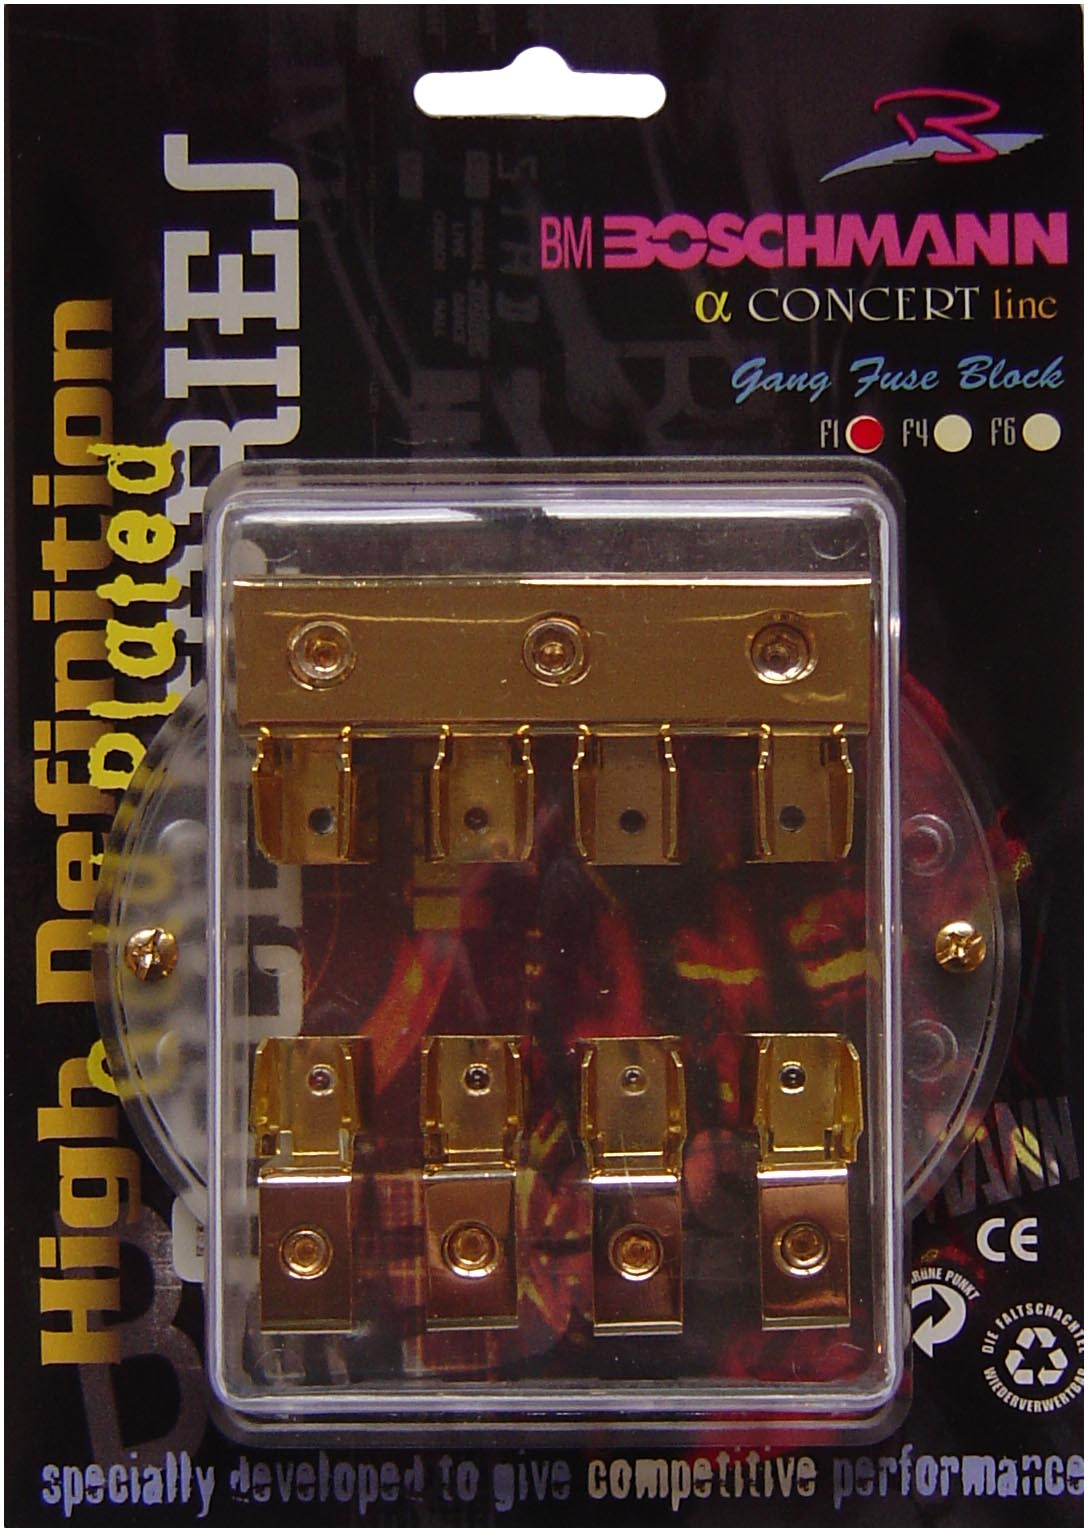 Boschmann Quad Fuse Holder Car Audio Equipmentquality Wiring Box Nz Click Image To Enlarge